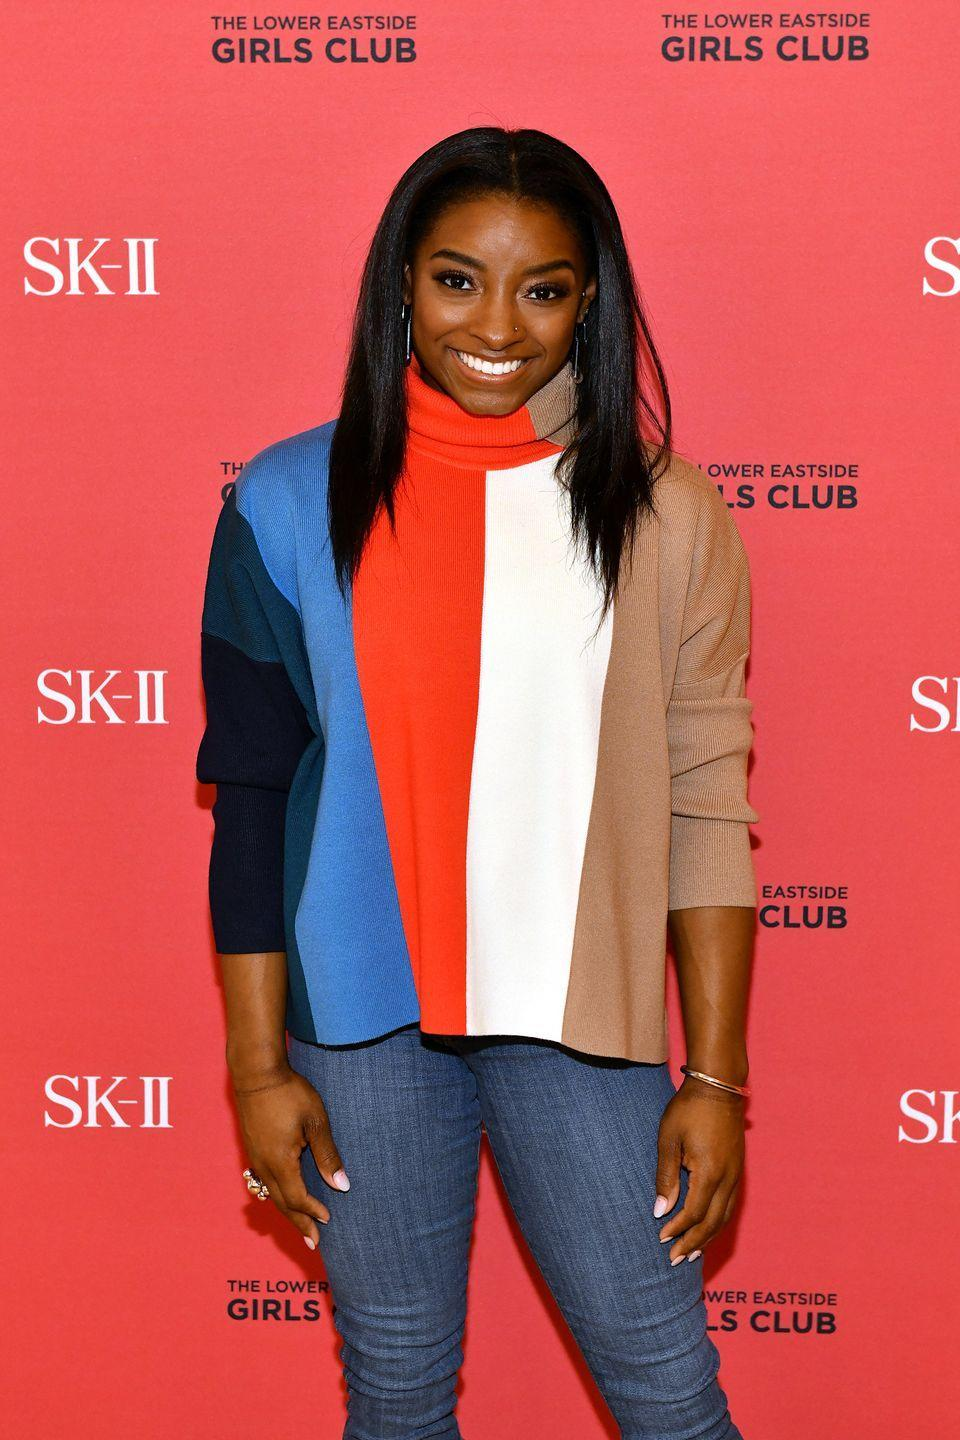 """<p>With her skills and passion for gymnastics, Simone Biles has become the <a href=""""https://www.nytimes.com/2021/05/24/sports/olympics/simone-biles-yurchenko-double-pike.html"""" rel=""""nofollow noopener"""" target=""""_blank"""" data-ylk=""""slk:world's most decorated gymnast"""" class=""""link rapid-noclick-resp"""">world's most decorated gymnast</a>. Between her Olympic and World Championship titles, Biles holds more than 30 medals. The <a href=""""https://www.elle.com/culture/celebrities/a37132040/simone-biles-tokyo-olympics-pressure-instagram/"""" rel=""""nofollow noopener"""" target=""""_blank"""" data-ylk=""""slk:United States gymnast competed"""" class=""""link rapid-noclick-resp"""">United States gymnast competed</a> in the 2020 Summer Games in Tokyo, but pulled out of the team final on July 27, 2021 to care for her mental health.</p>"""